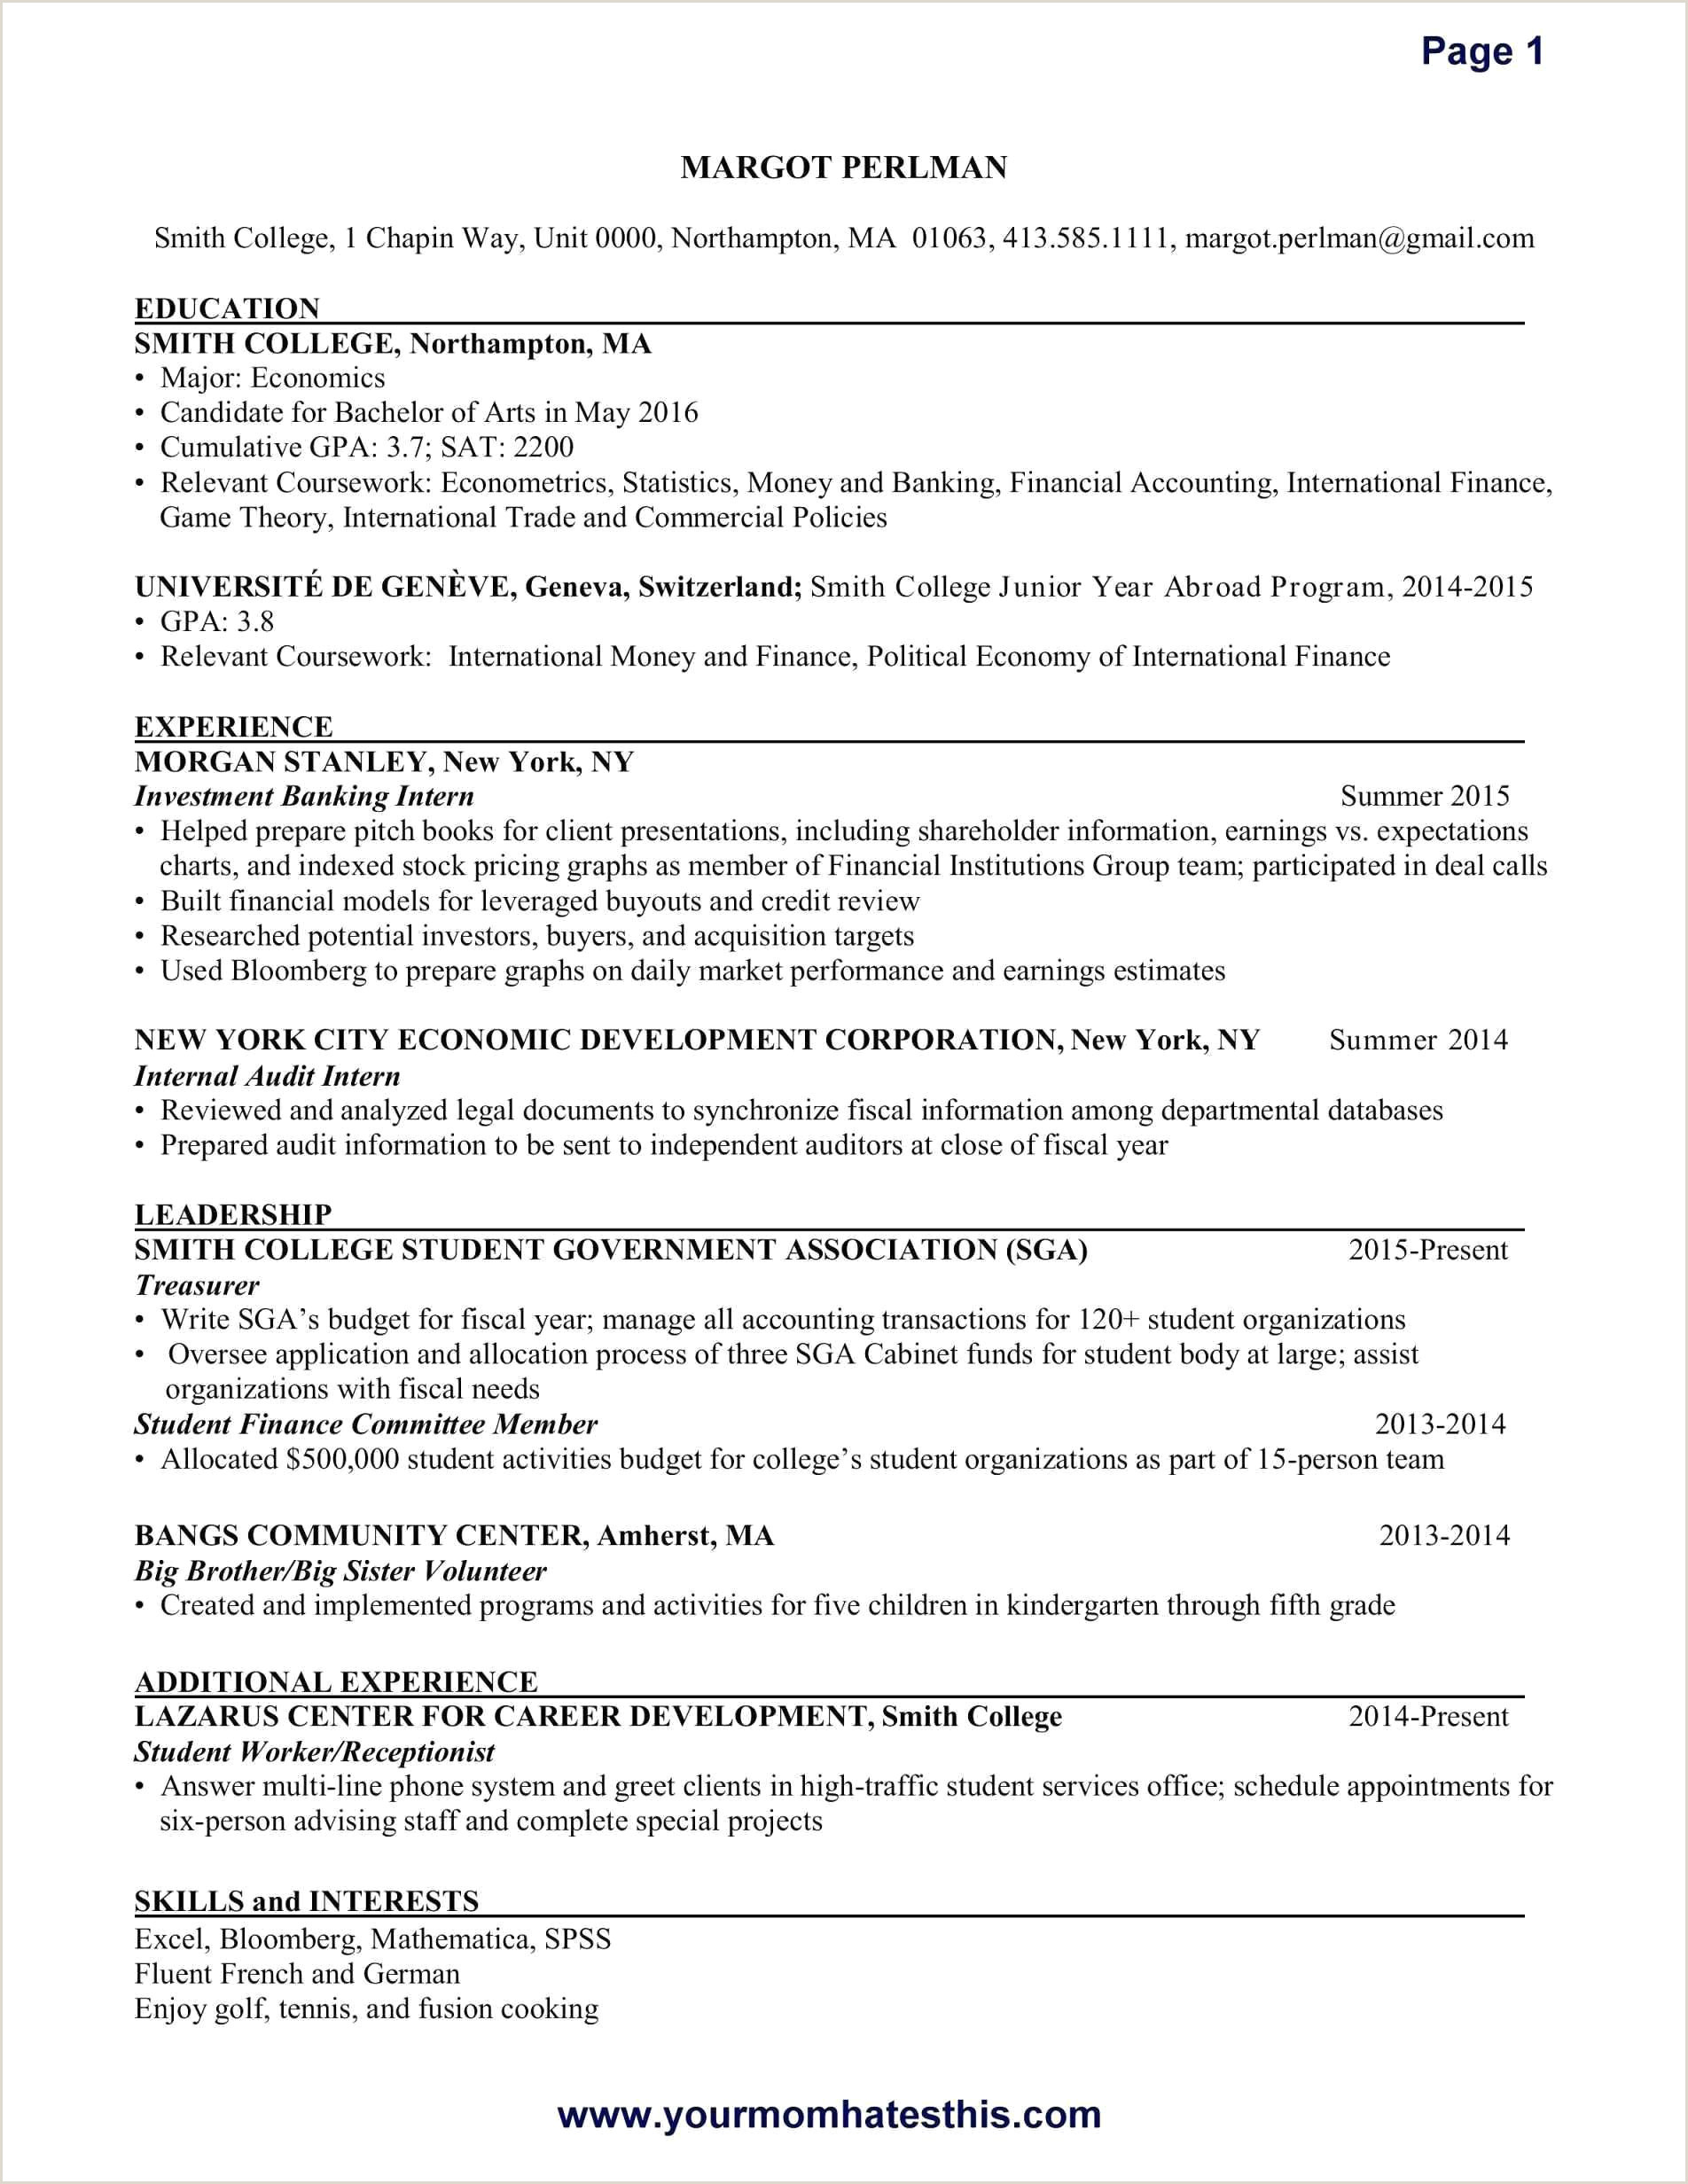 Cv Sample for Receptionist Job Simple Modele De Cv Finance Iulitte